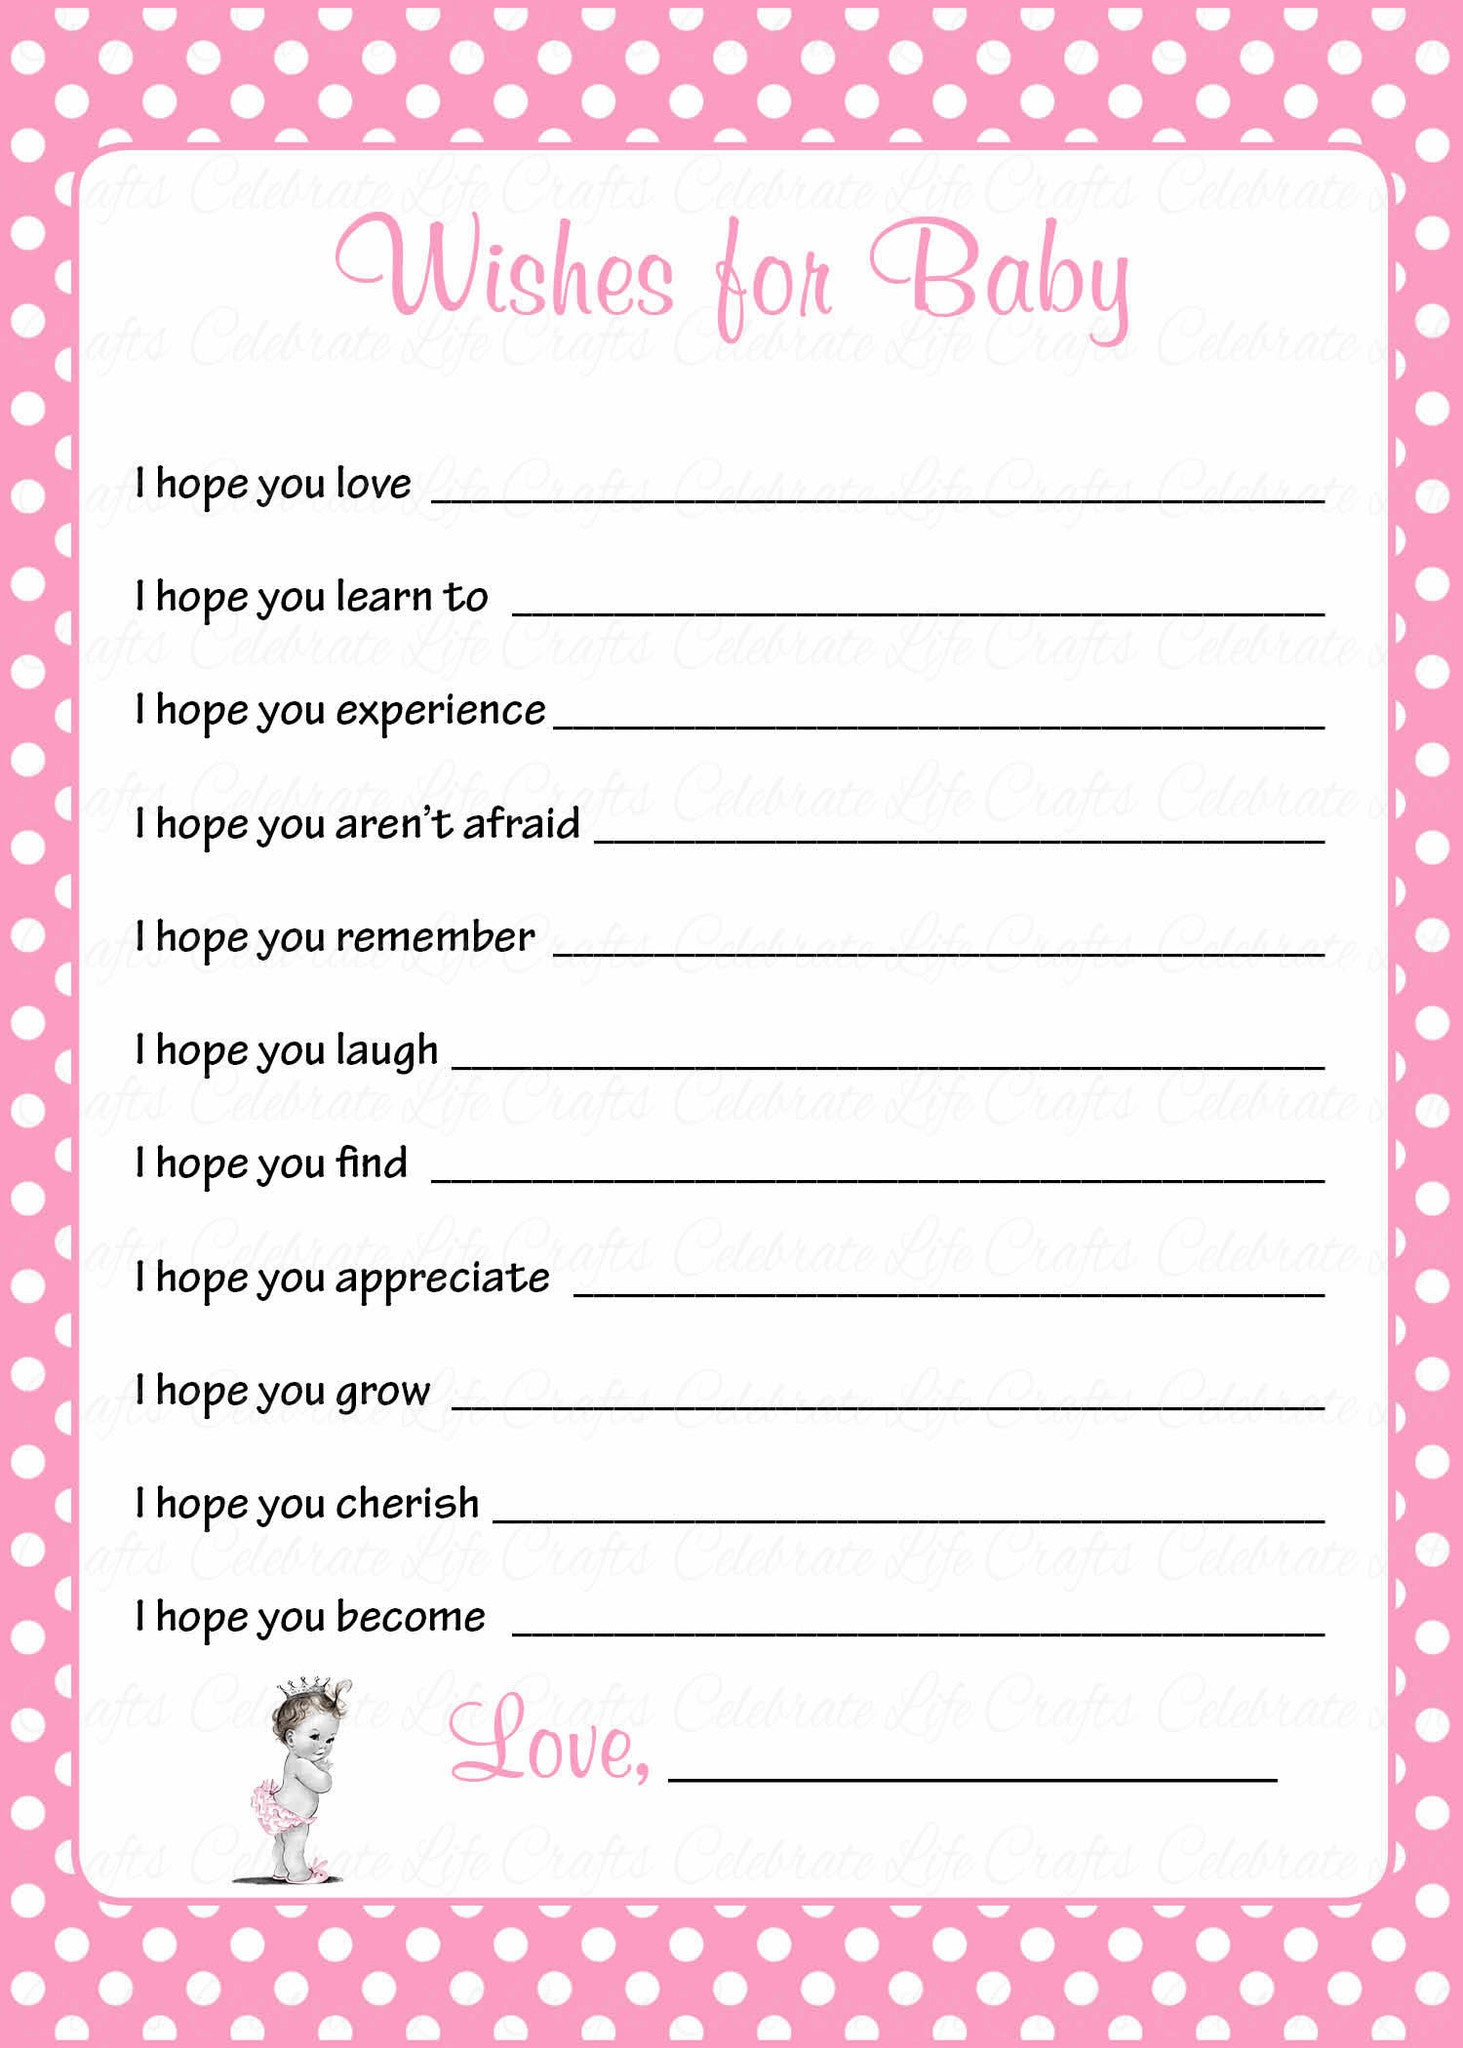 Wishes for Baby Shower Activity Princess Baby Shower Theme for